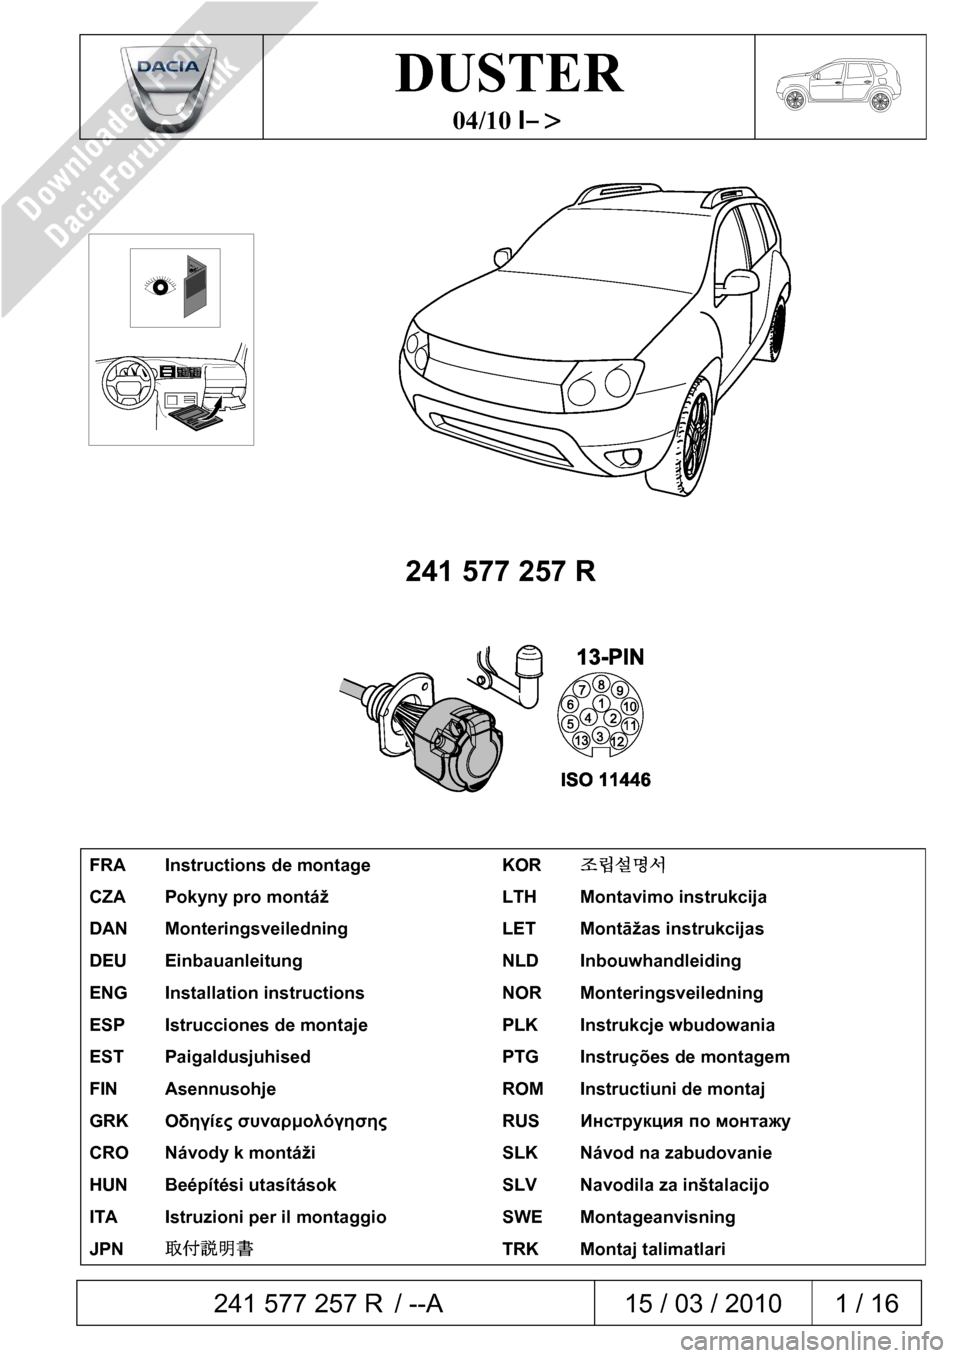 DACIA DUSTER 2010 1.G 13 Pin Towbar Fitting Guide Workshop Manual, Page 1